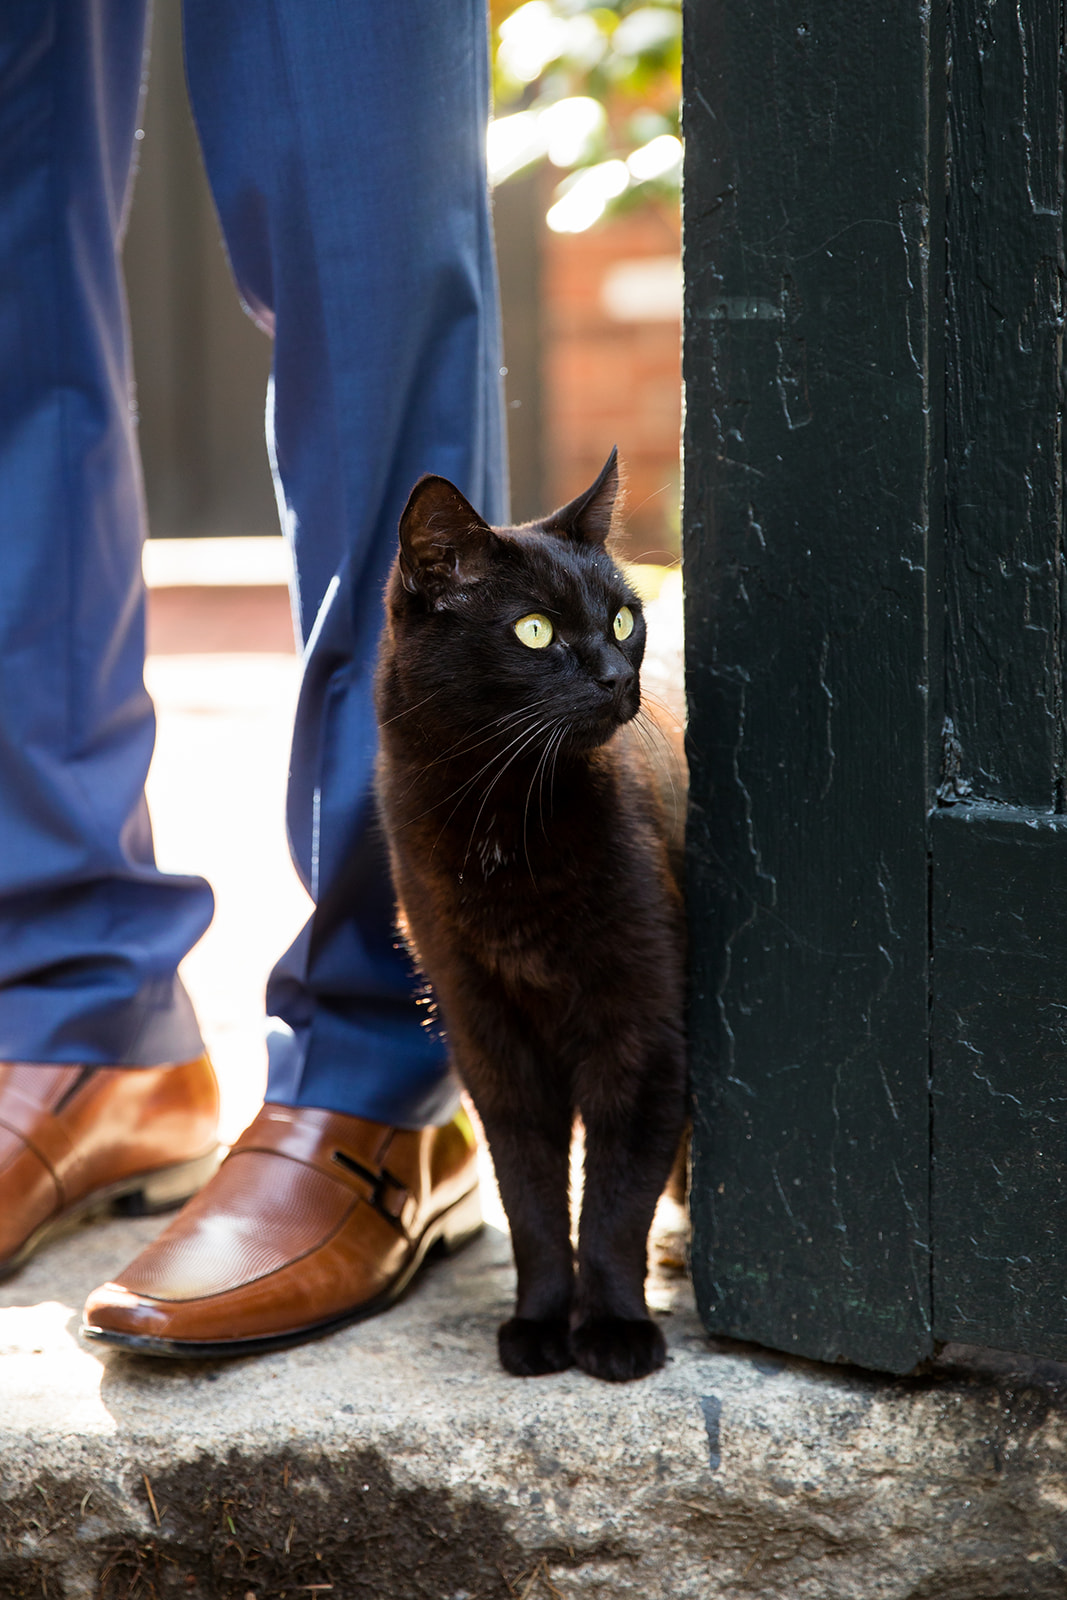 Poe Museum Elopement with a Black Cat - Image Property of www.j-dphoto.com